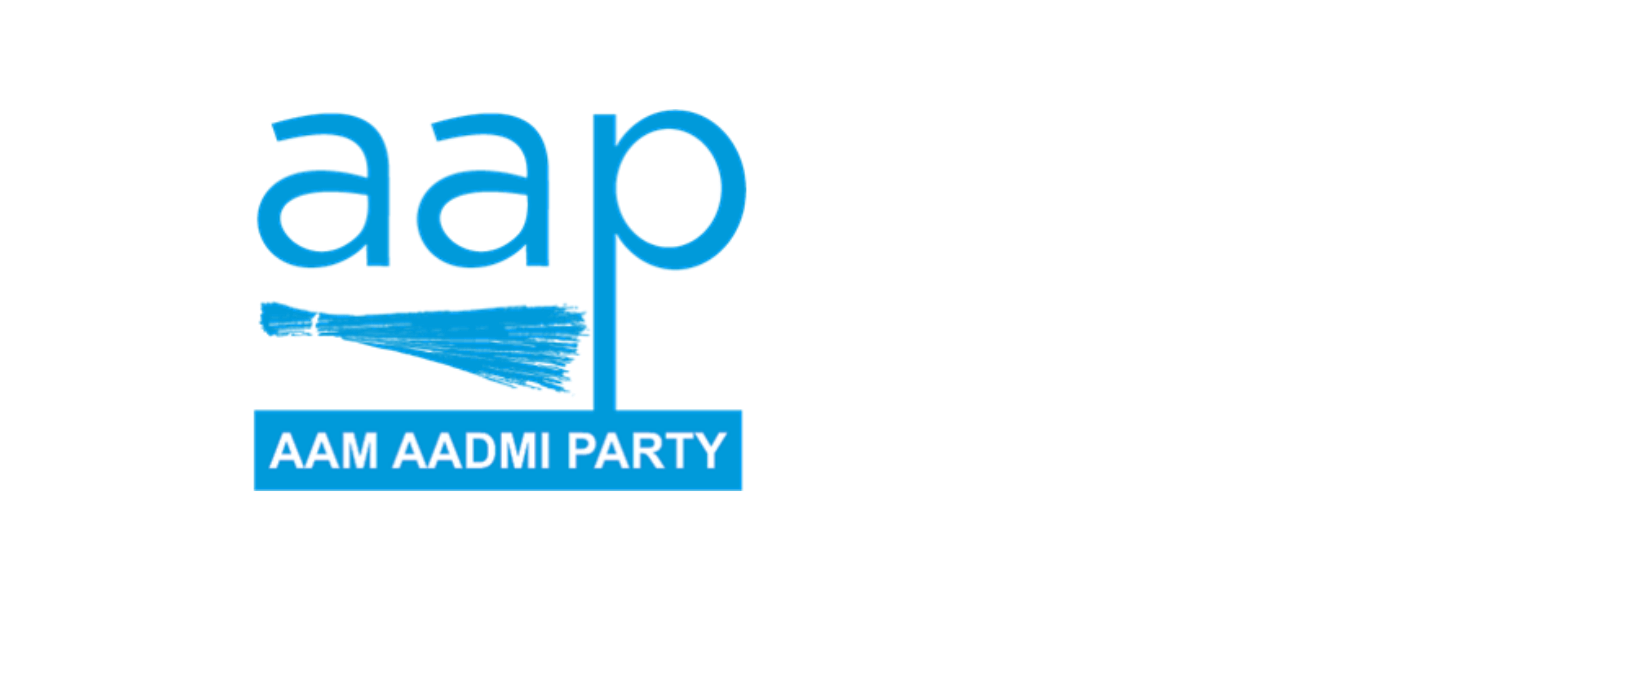 Aam Aadmi Party flag image preview